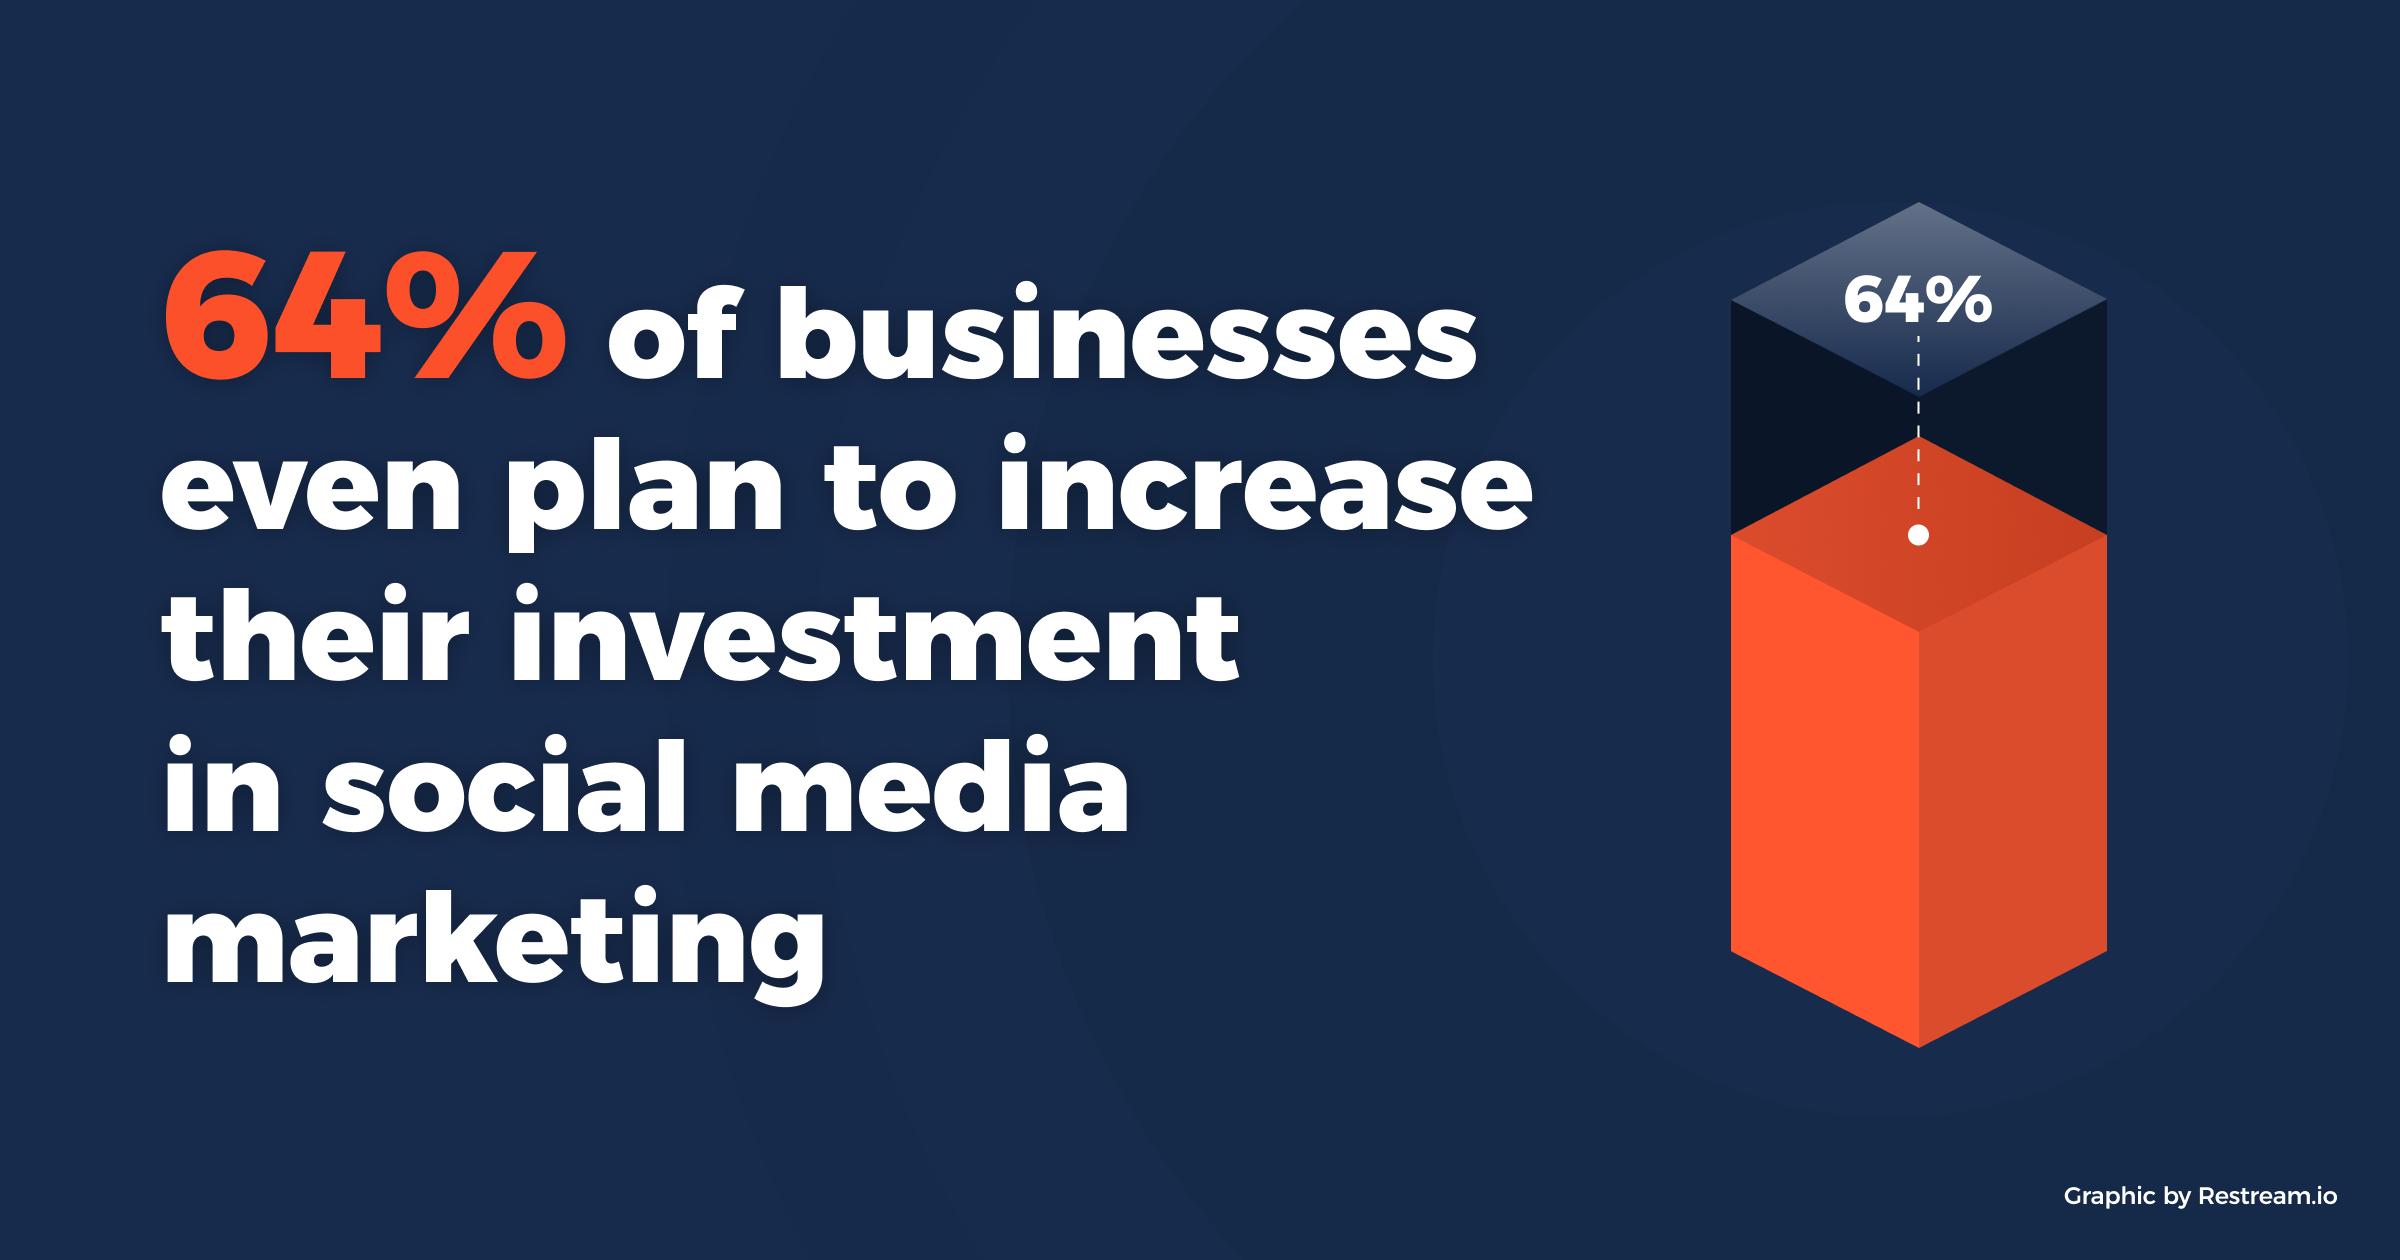 64% of businesses even plan to increase their investment in social media marketing